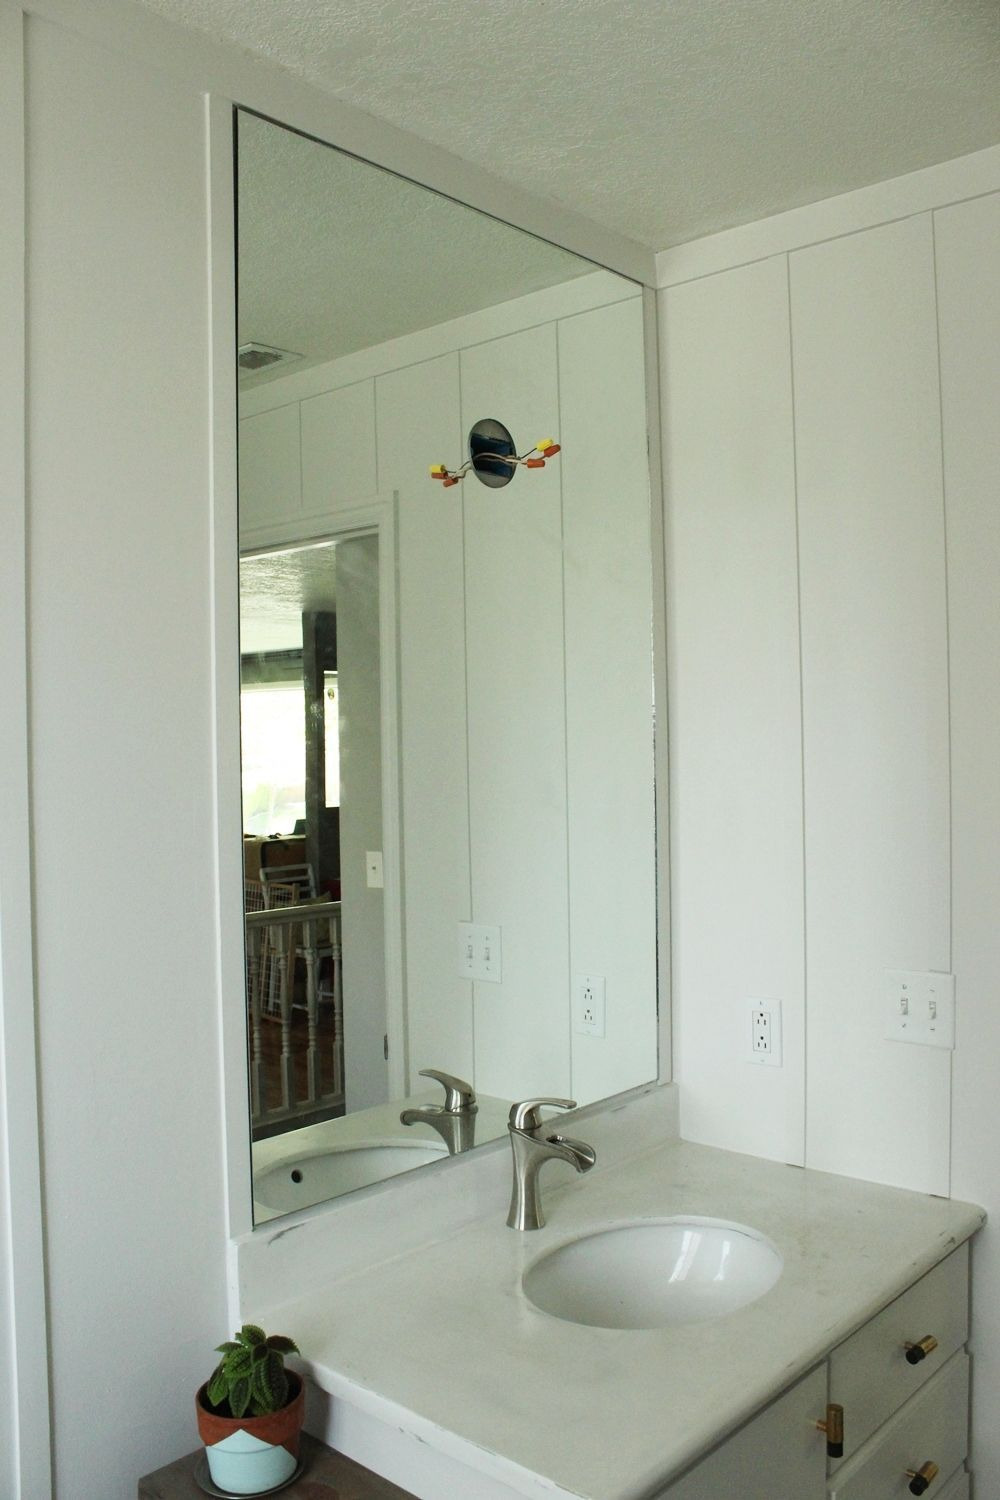 Decorative Mirrors for Bathrooms New How to Professionally Install A Bathroom Mirror